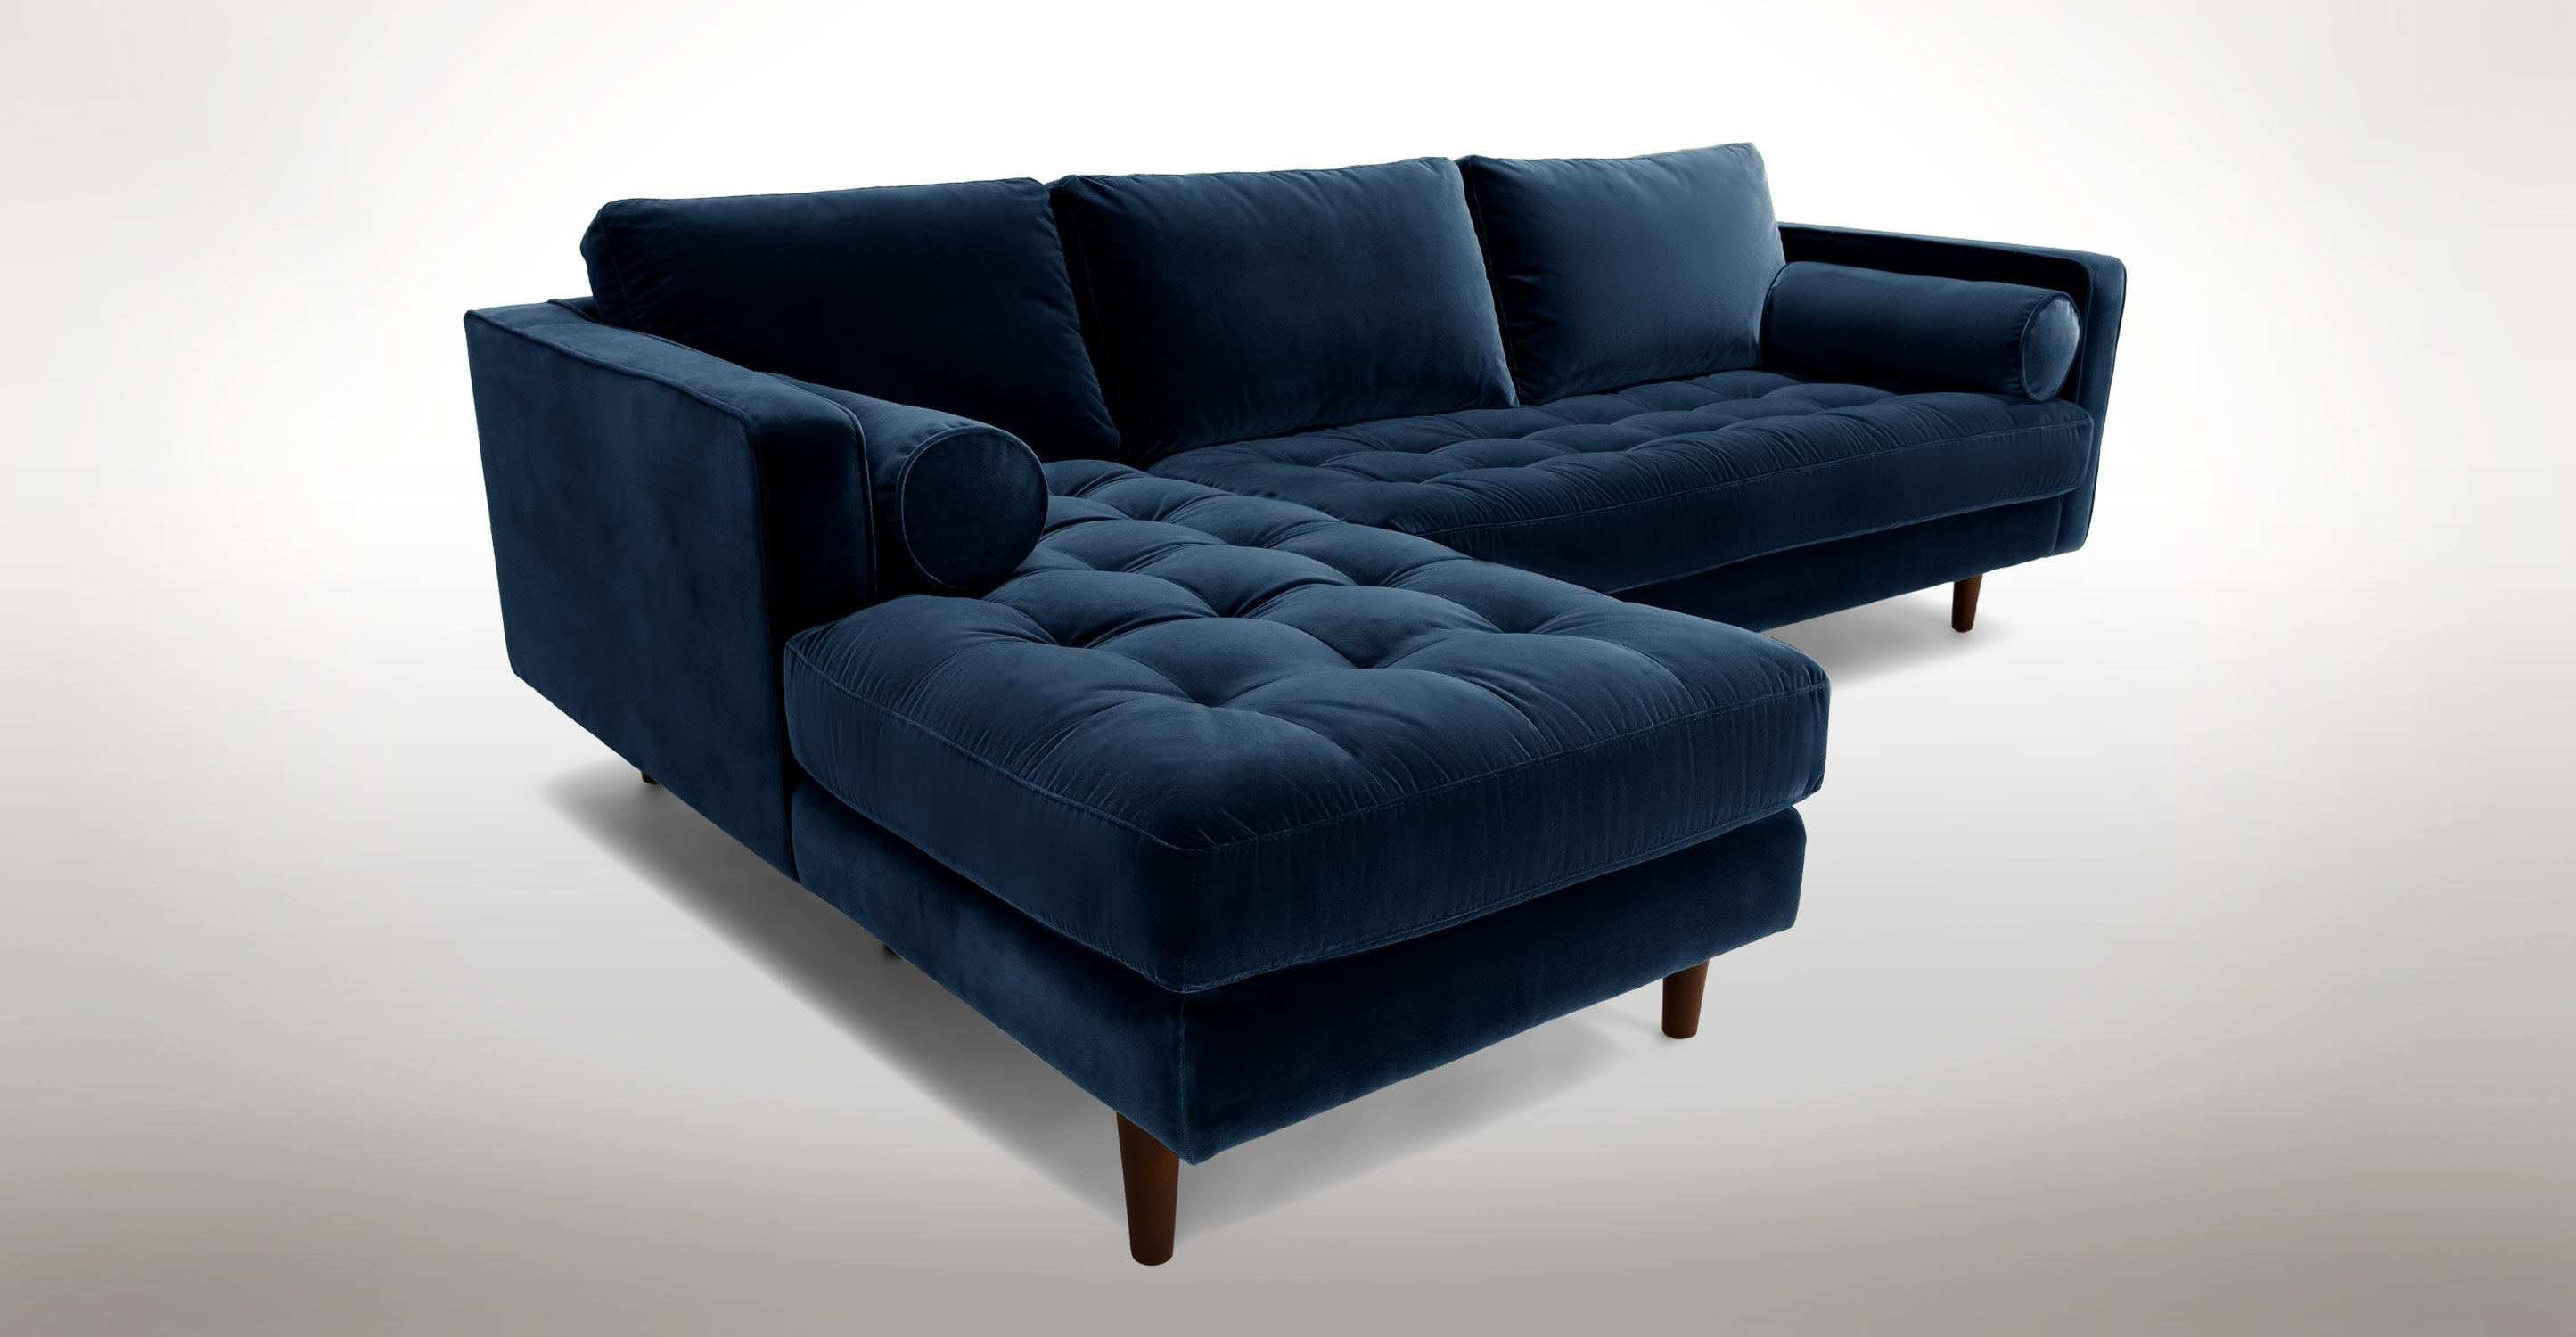 stunning sale in salenavy design sectionalsnavy blue loveseatsnavy sectionals sofas picture sectional leather for and made navy north